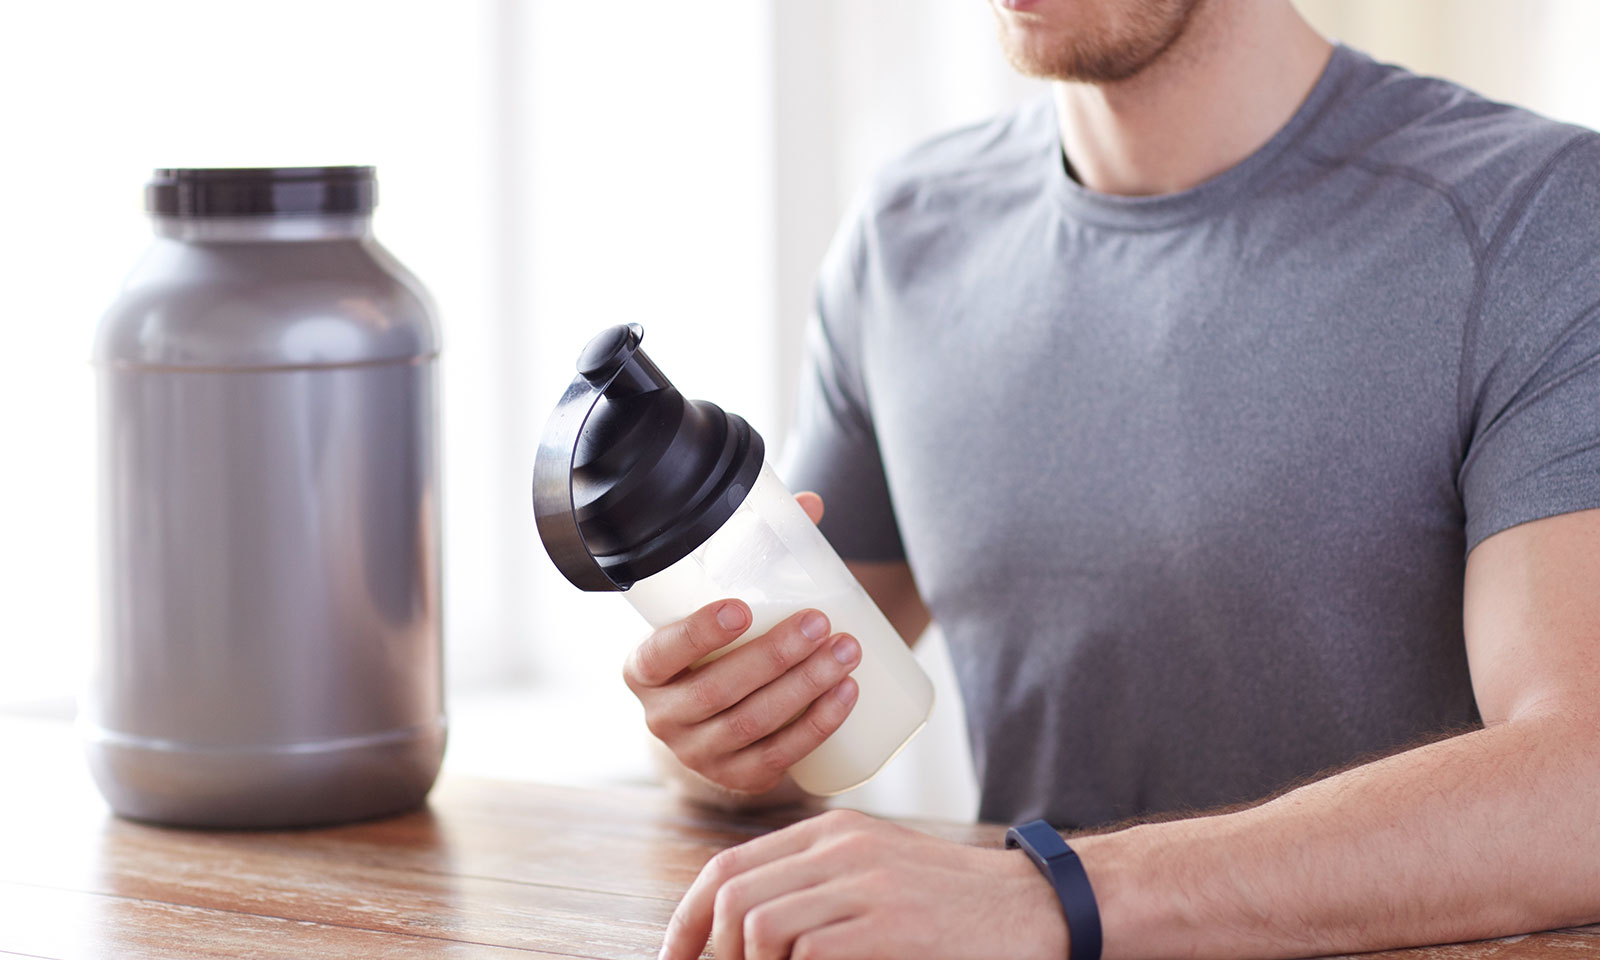 What Should You NOT Take With Creatine